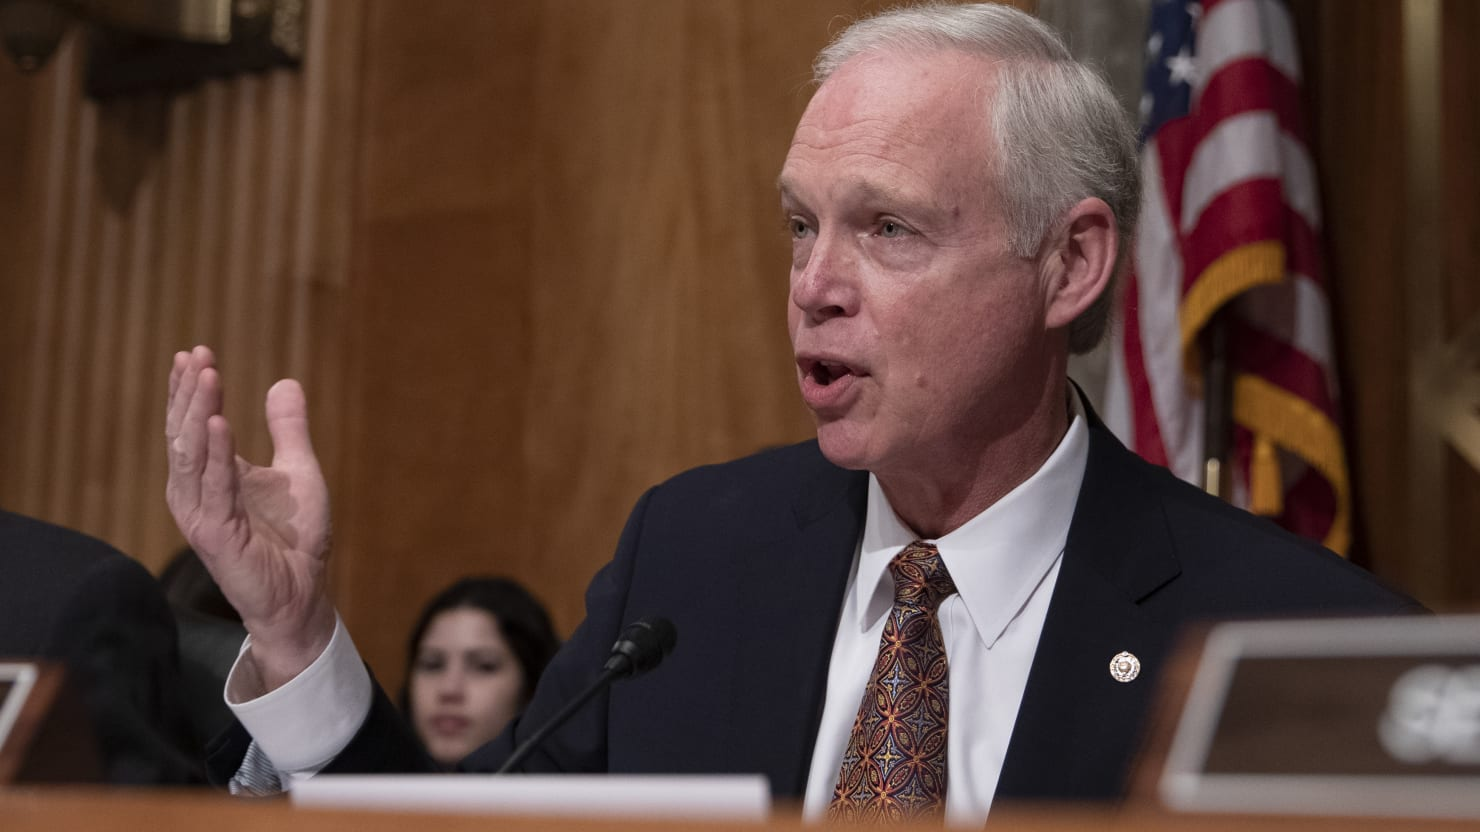 Sen. Ron Johnson: We Shouldn't Shut Down Economy Just Cause Up to 3.4% of Population Could Die